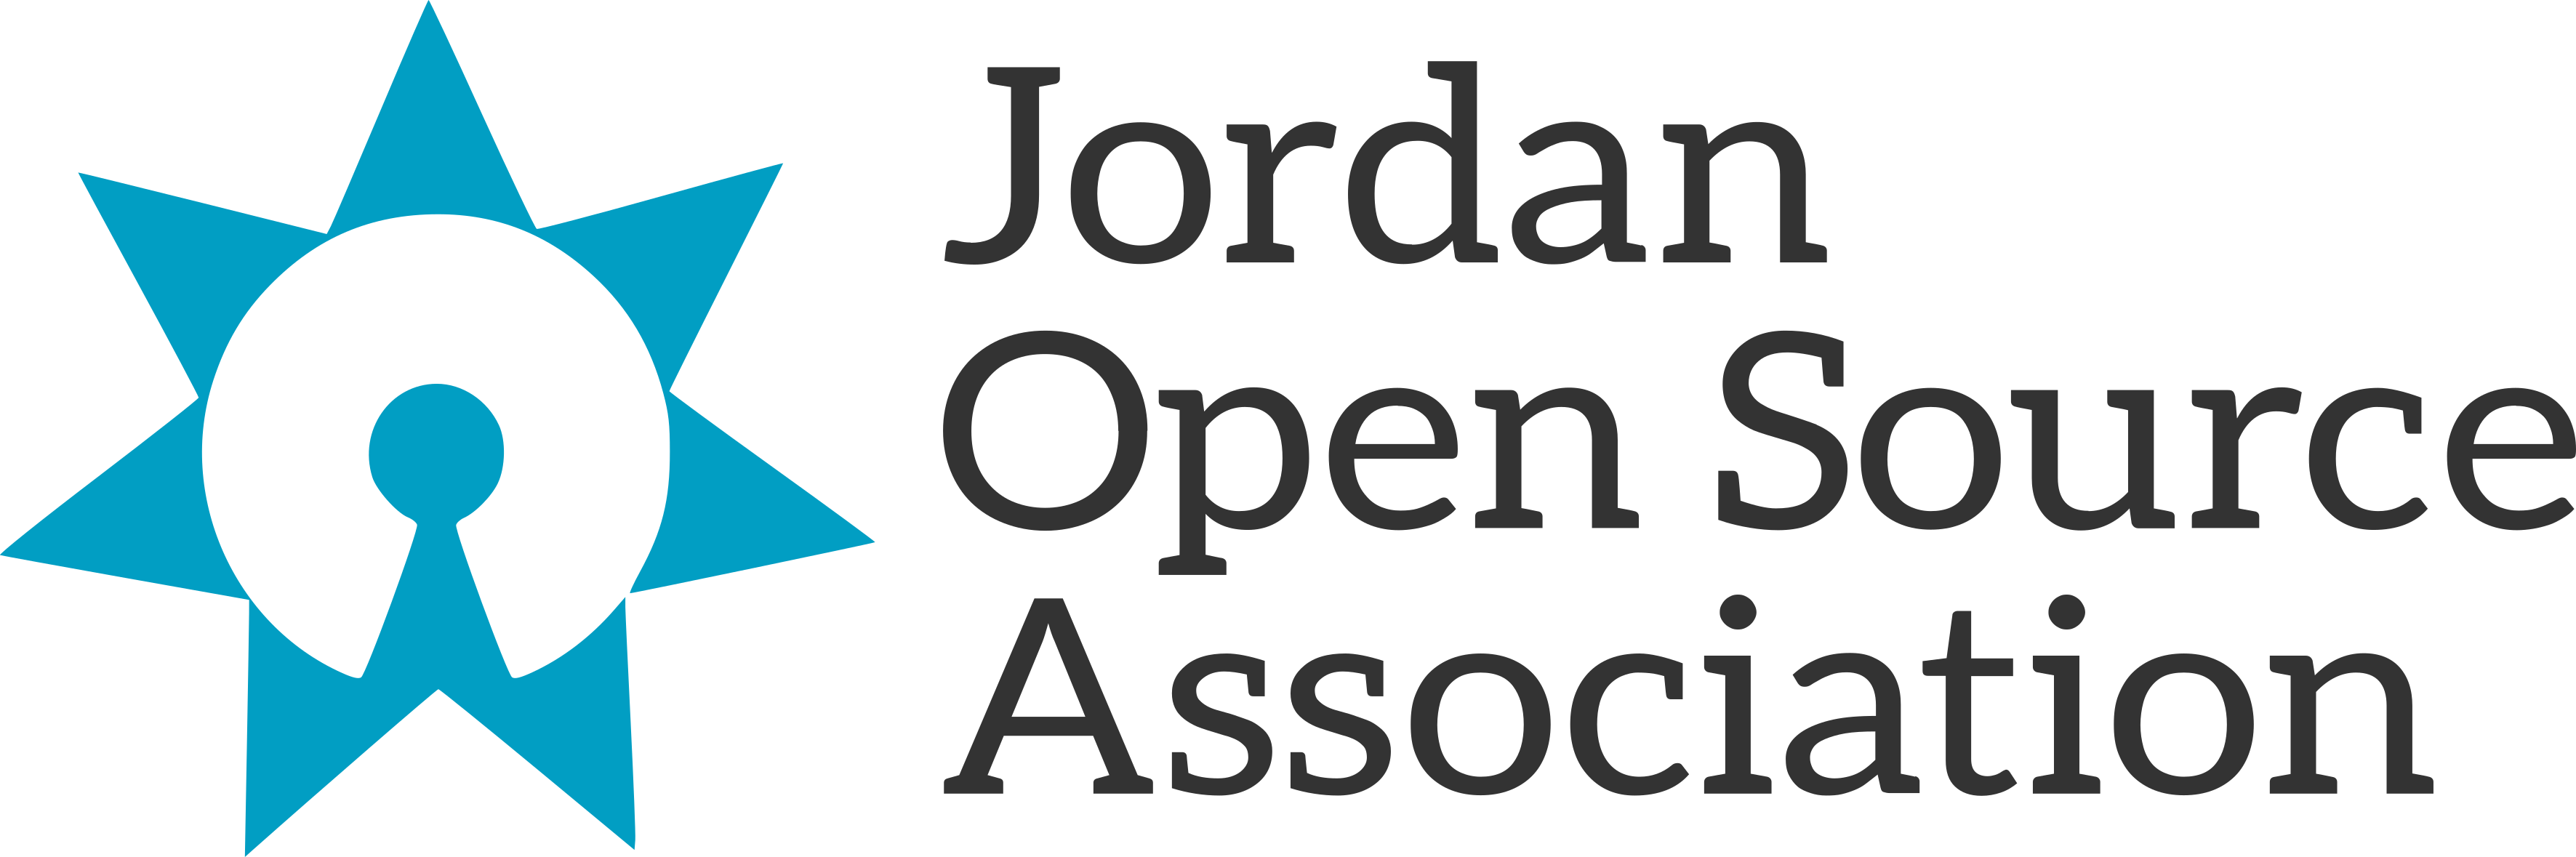 Jordan Open Source Association (JOSA)